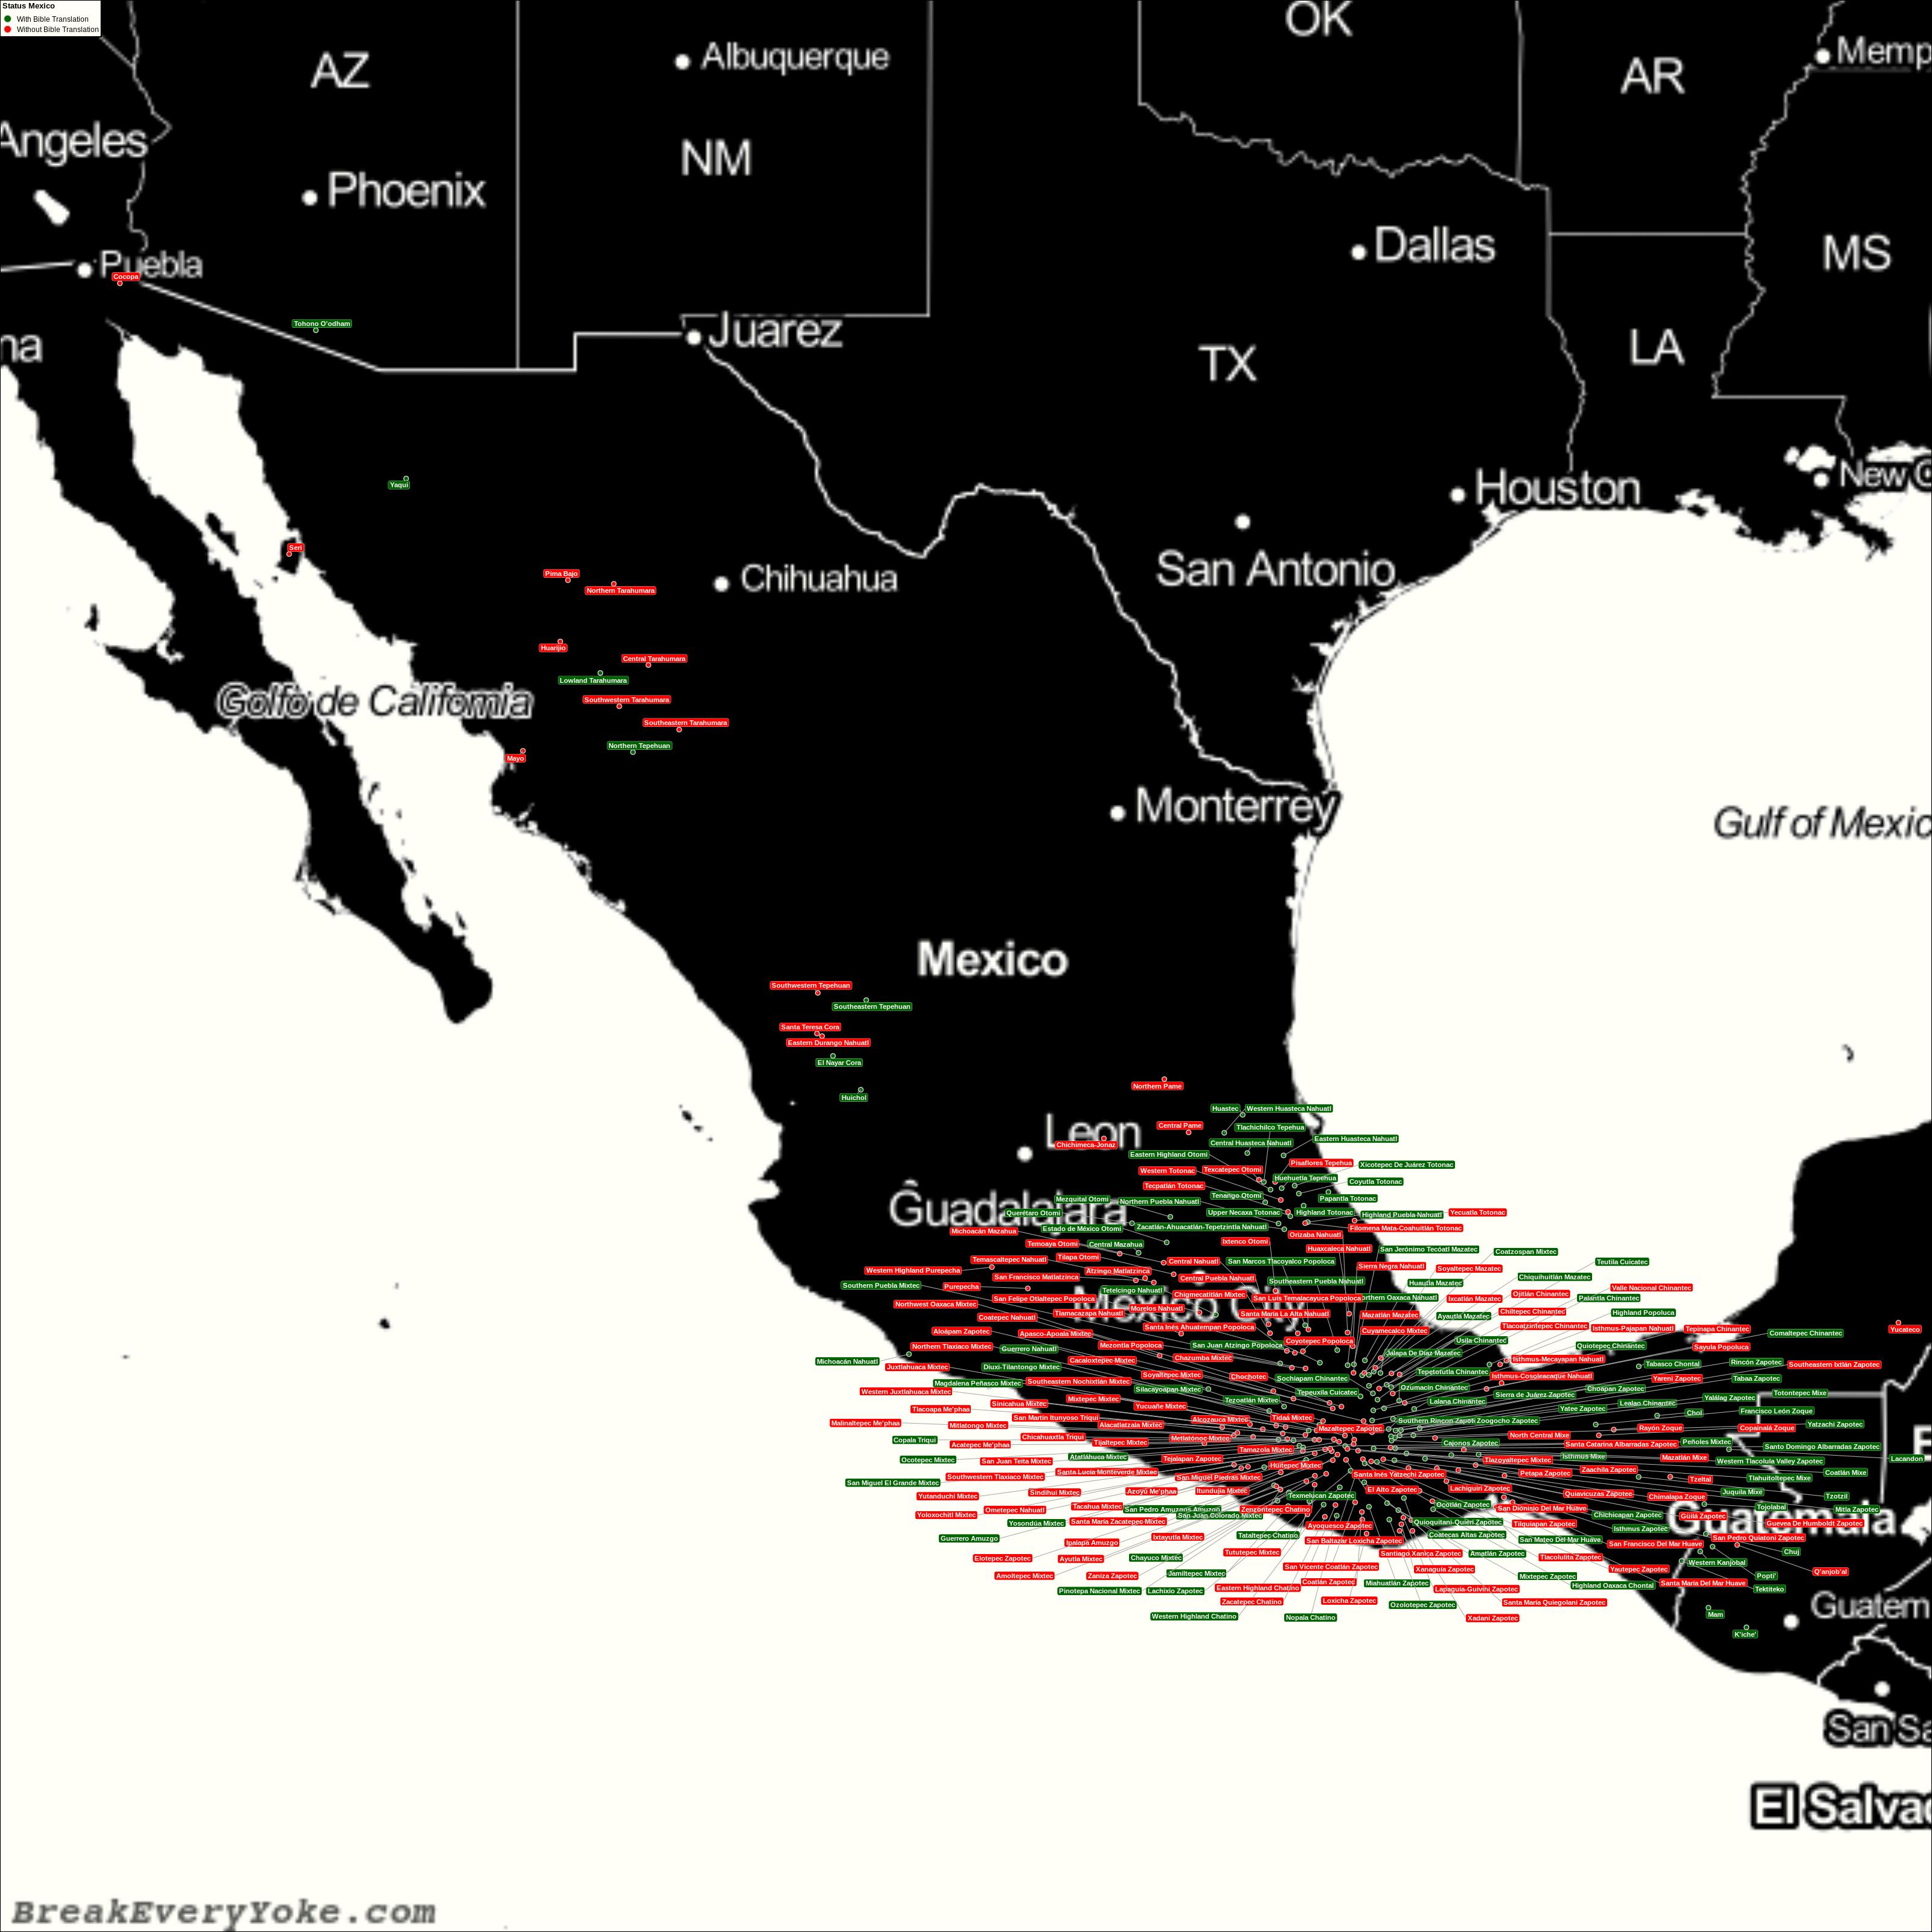 Complete and detailed map of all languages with and without a free Bible Translation in Mexico